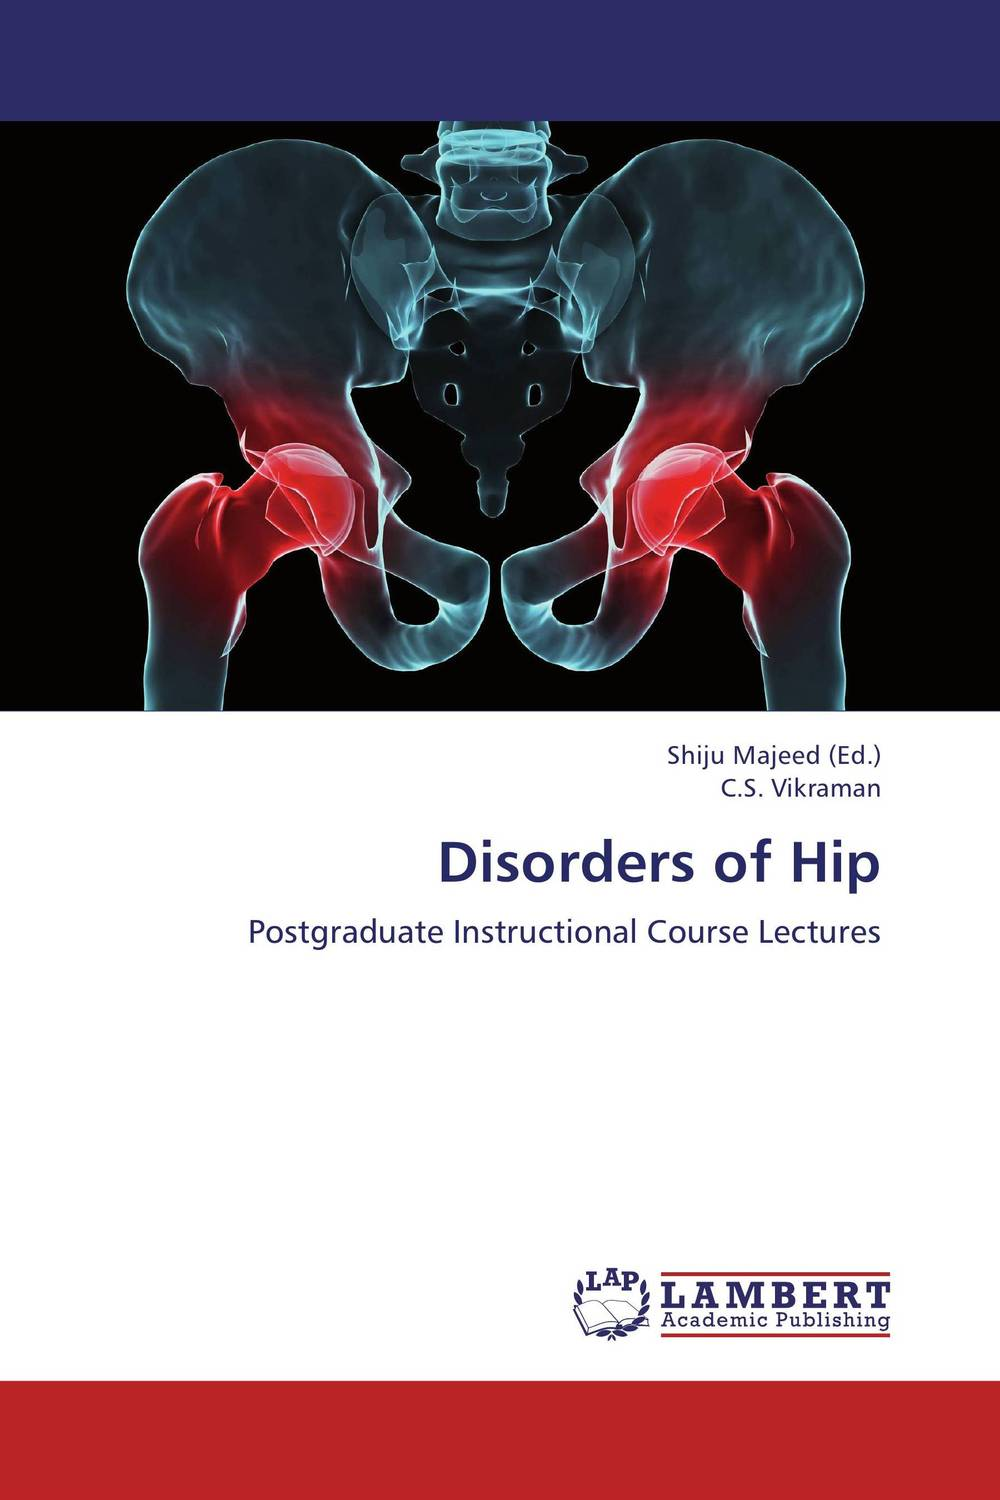 Disorders of Hip dr david m mburu prof mary w ndungu and prof ahmed hassanali virulence and repellency of fungi on macrotermes and mediating signals